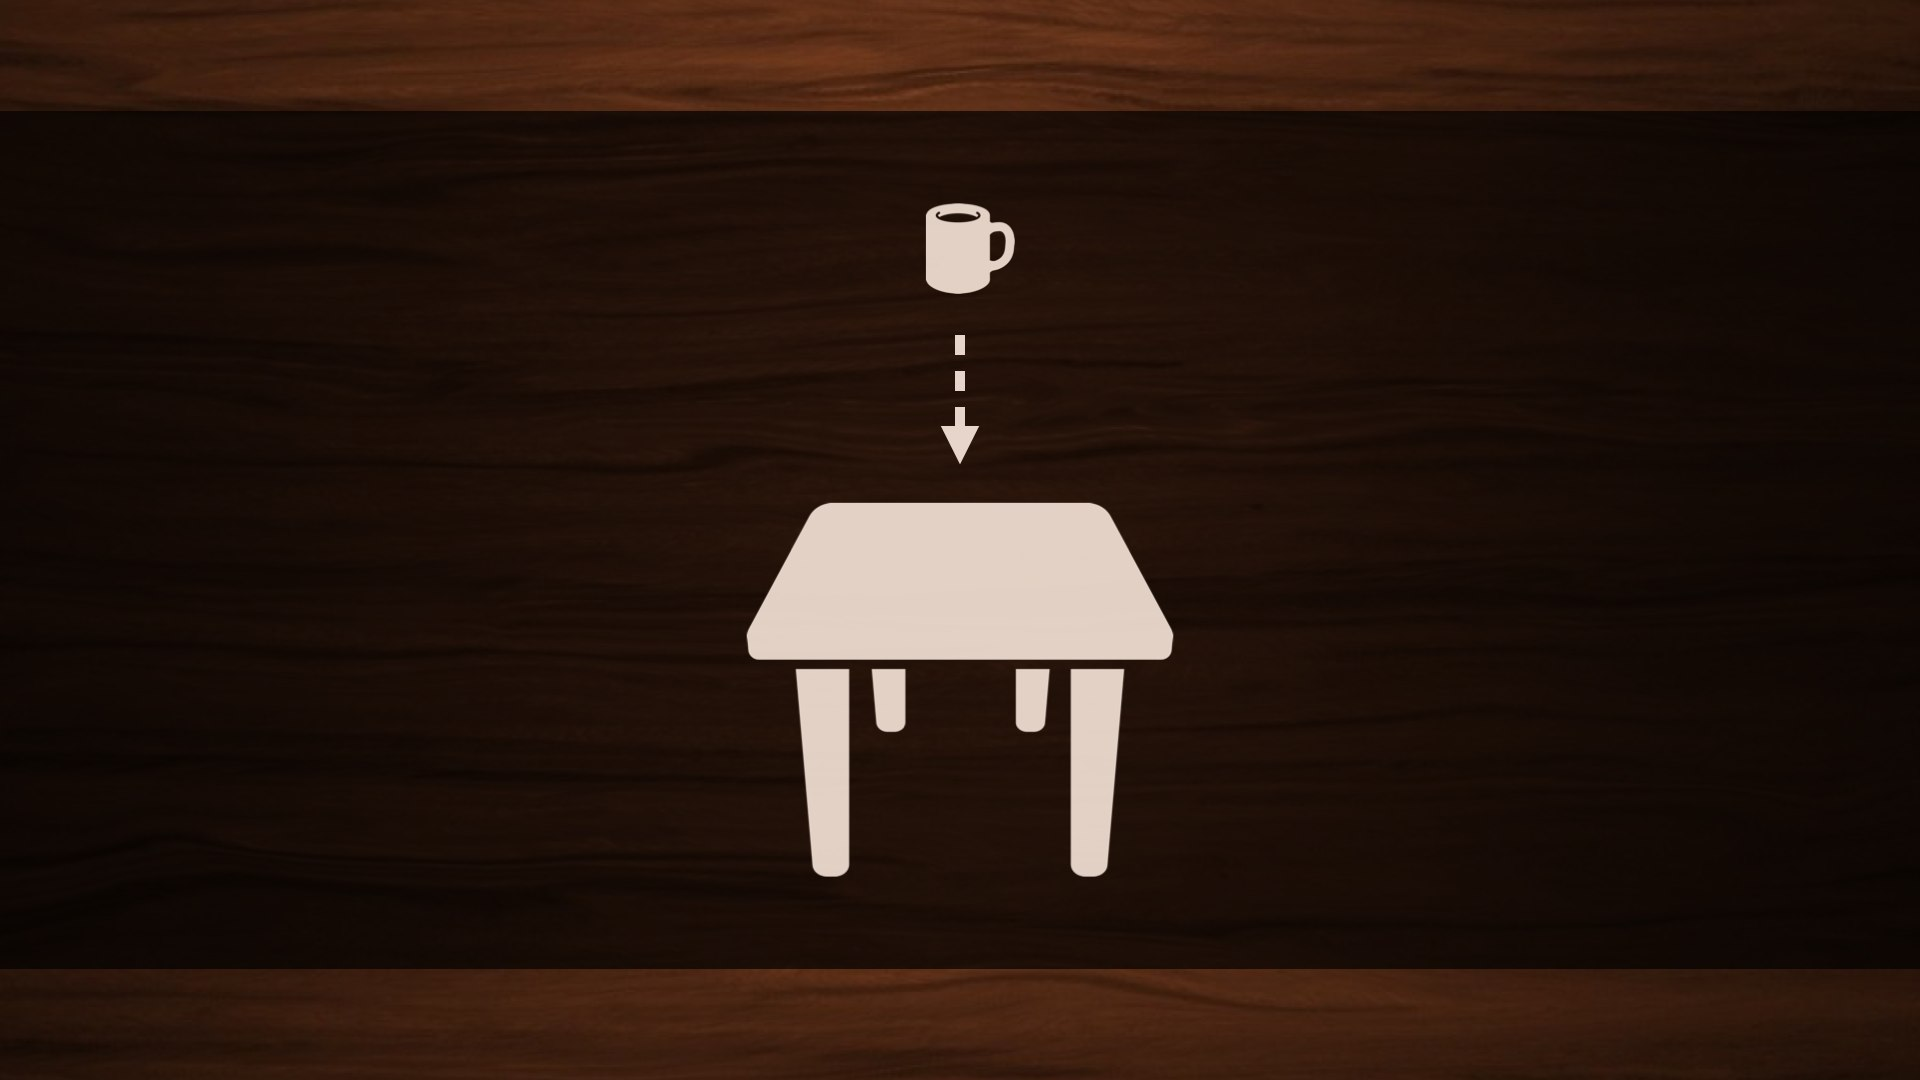 An illustration of a cup of coffee hovering above a table, with an arrow pointing down toward the tabletop